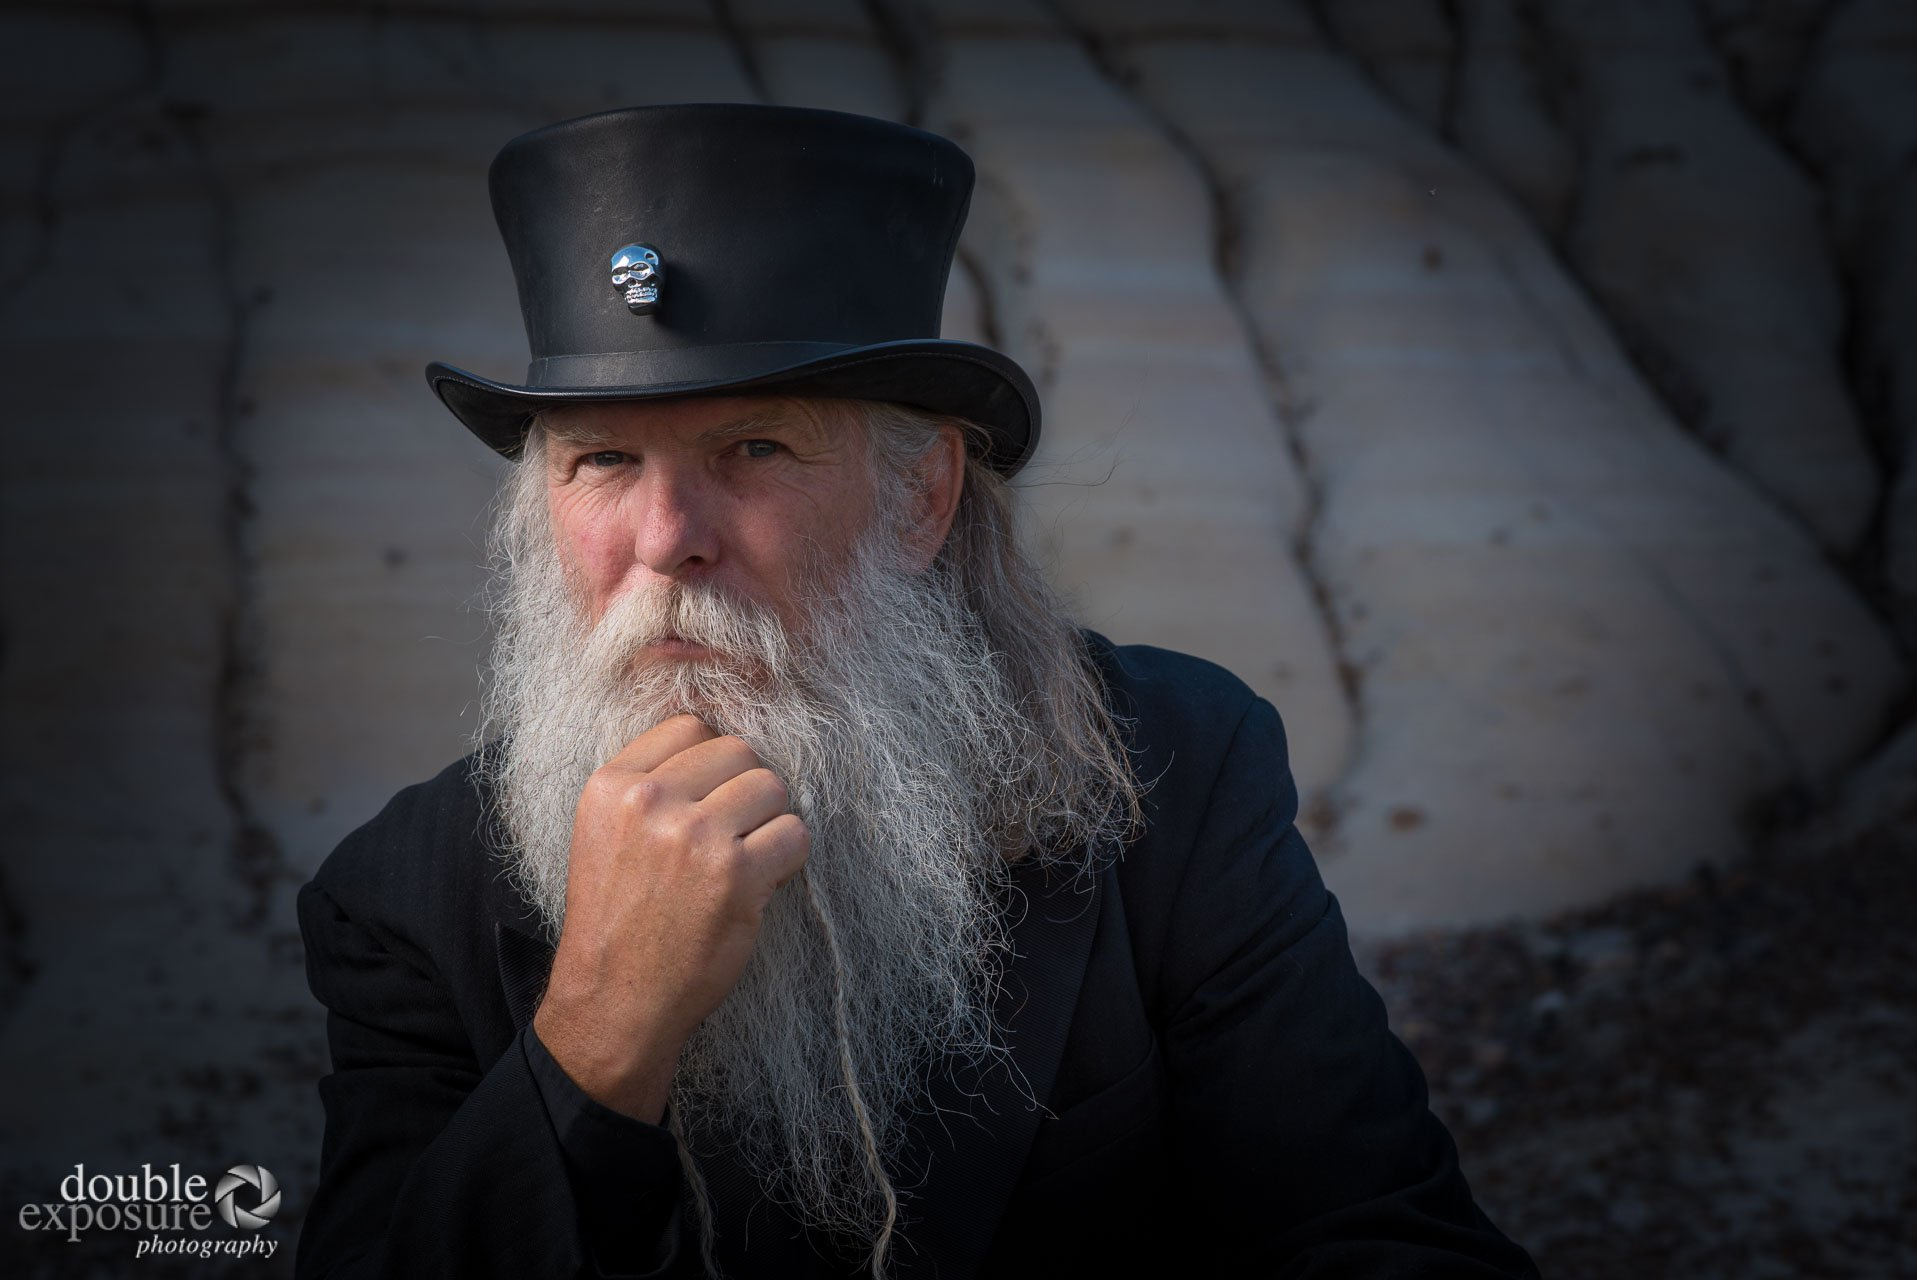 Old man with beard and tall hat.